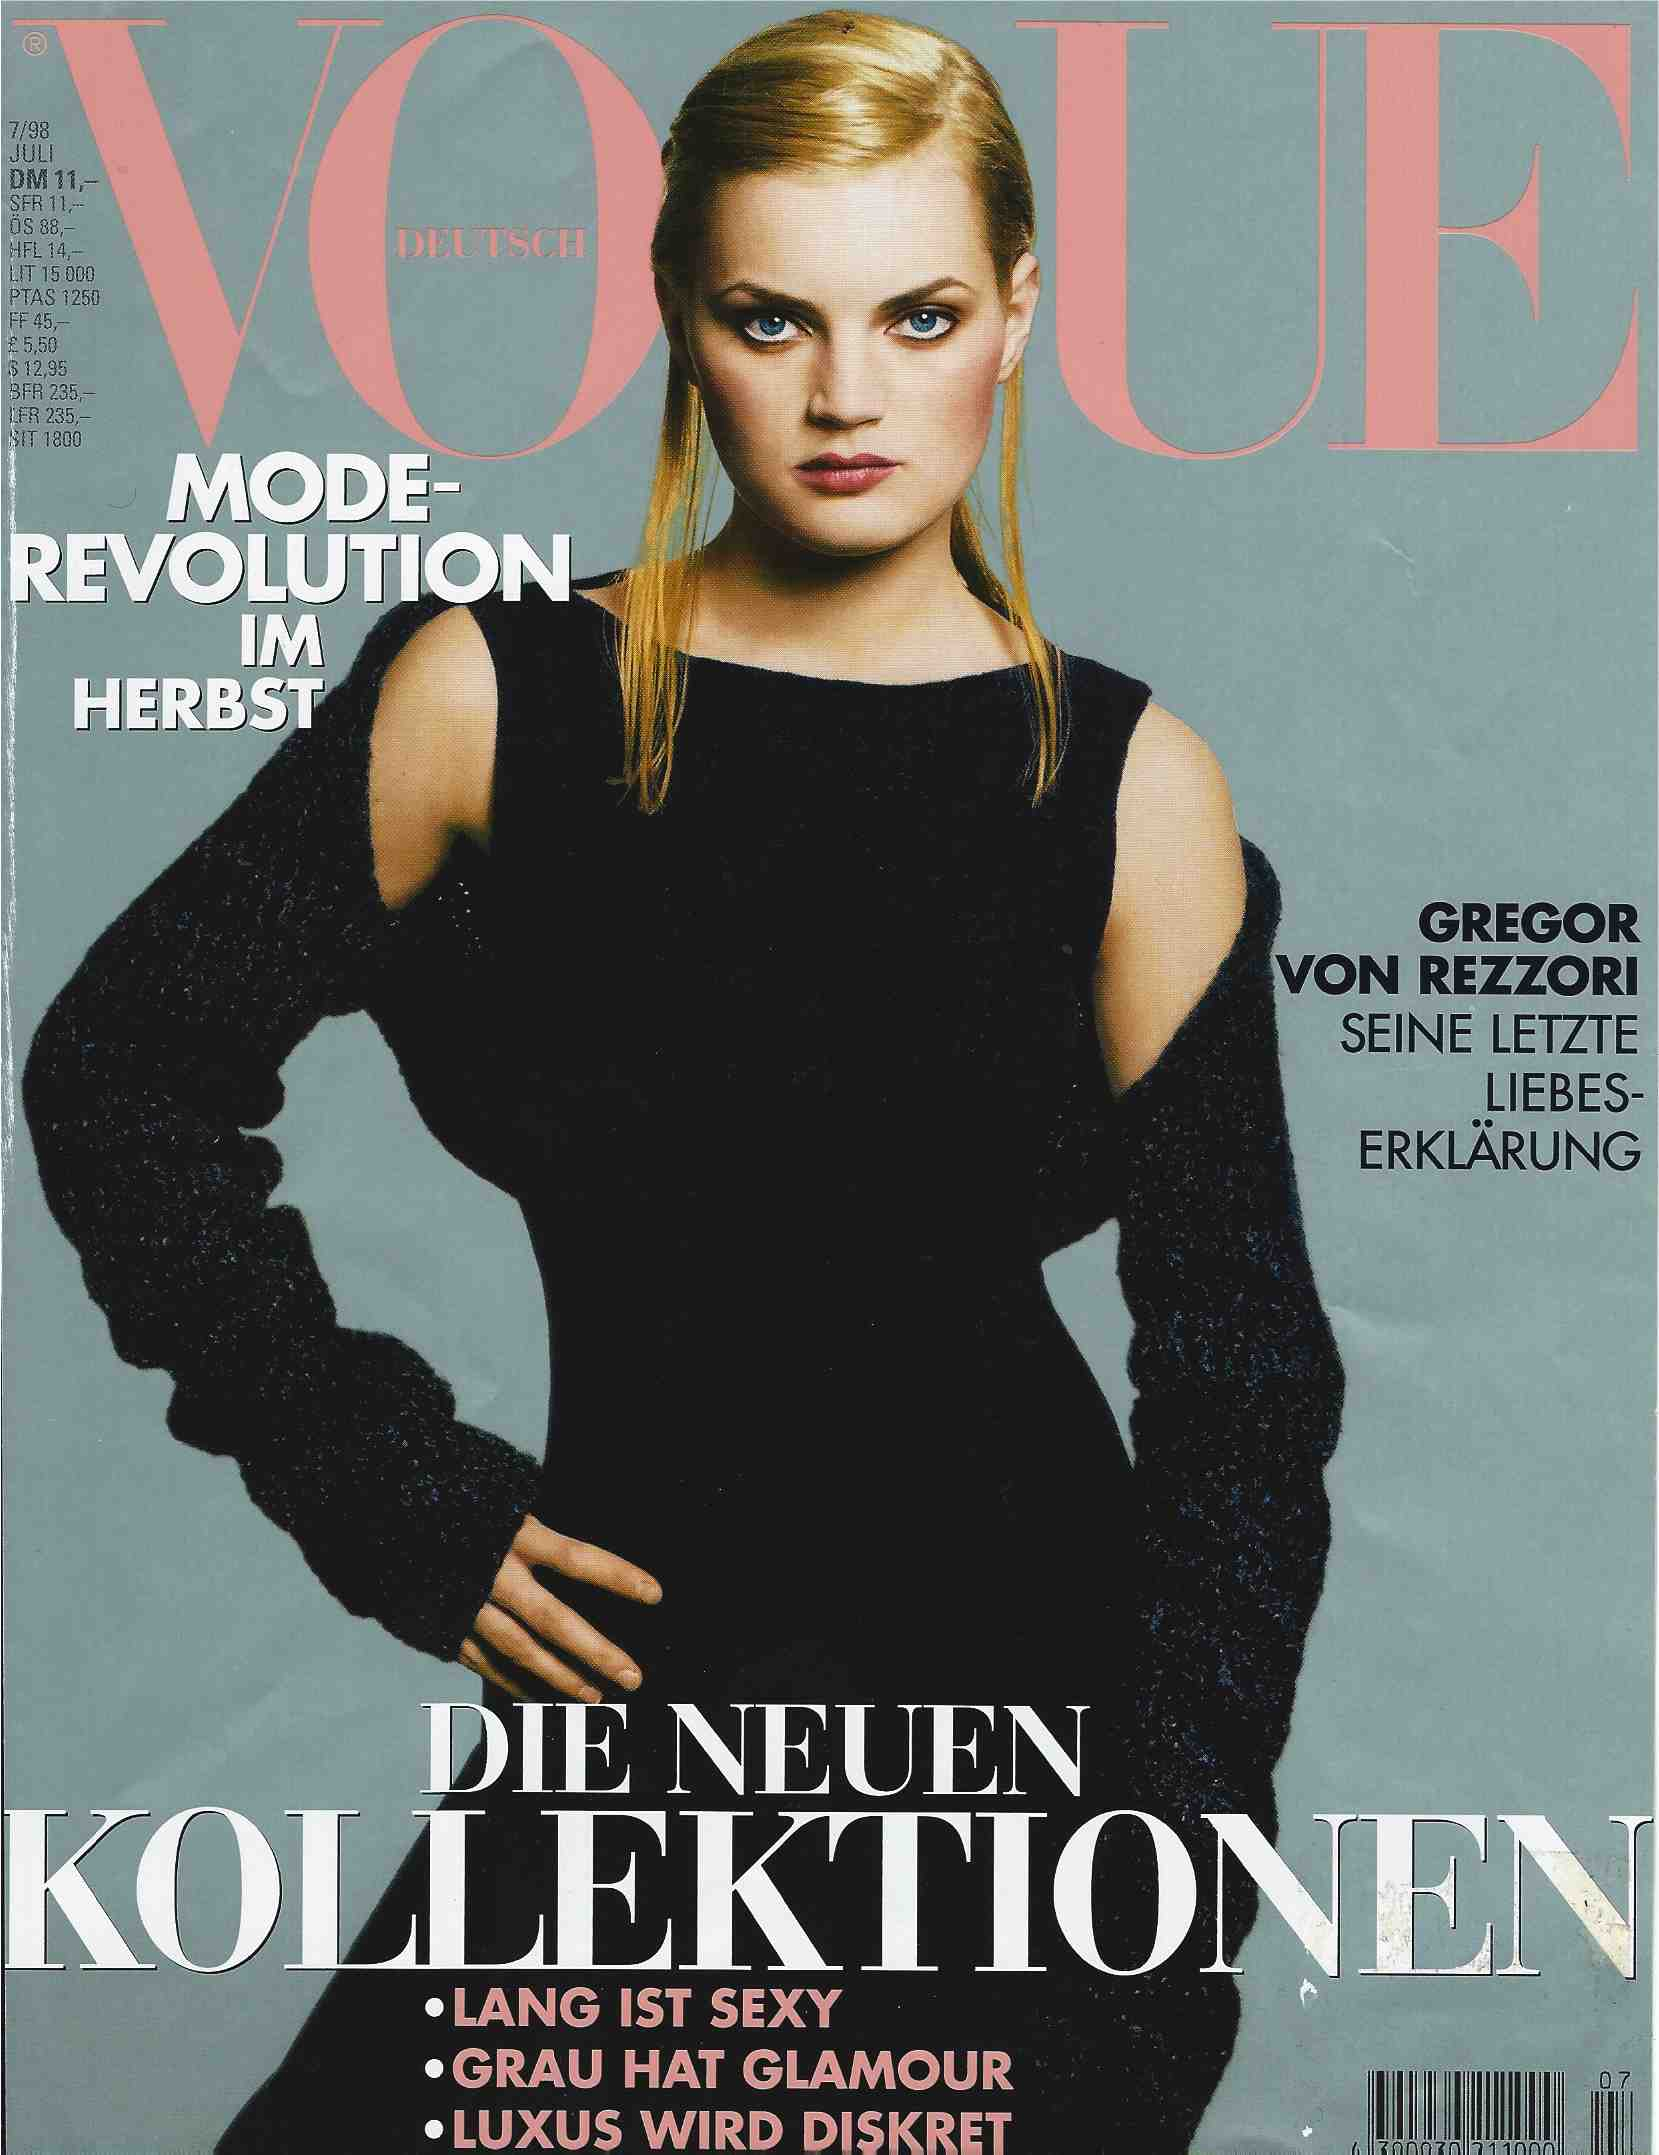 Mark Abrahams - German Vogue Cover - Genevieve Van Seenus copy.jpg